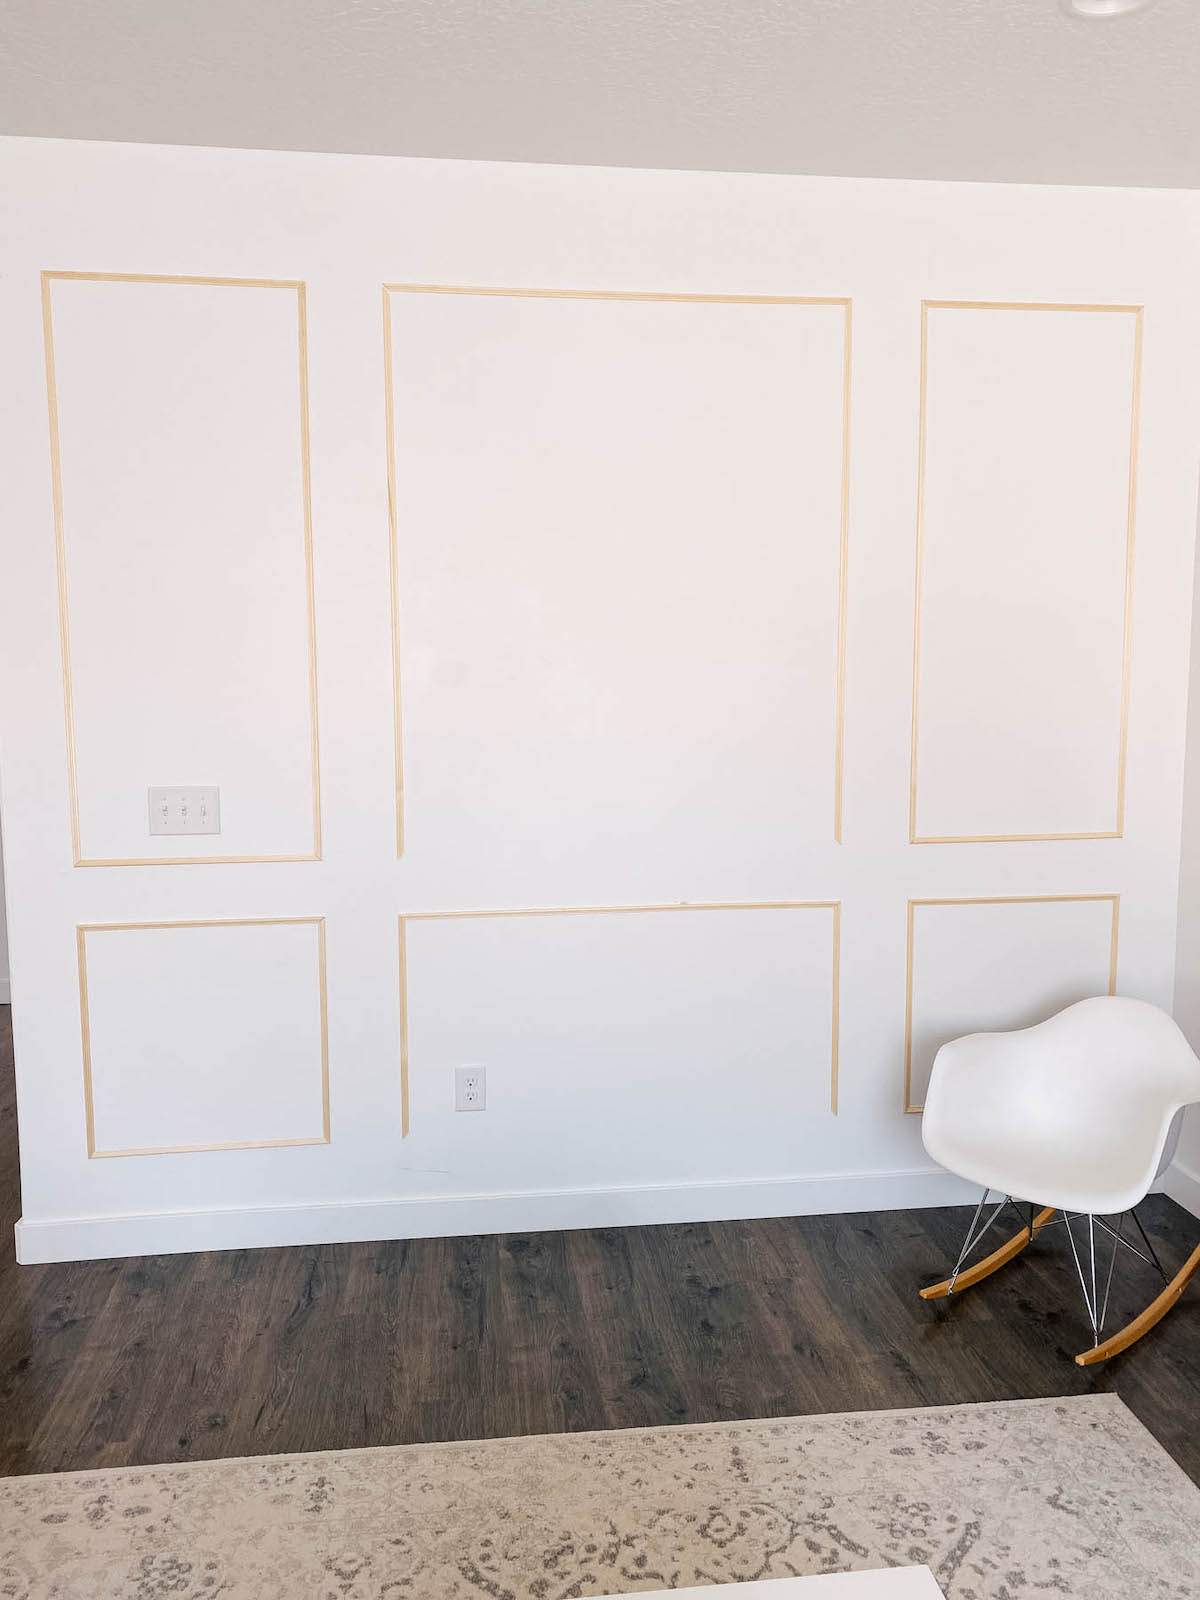 Unfinished picture frame moulding on white wall with white chair and rug nearby.